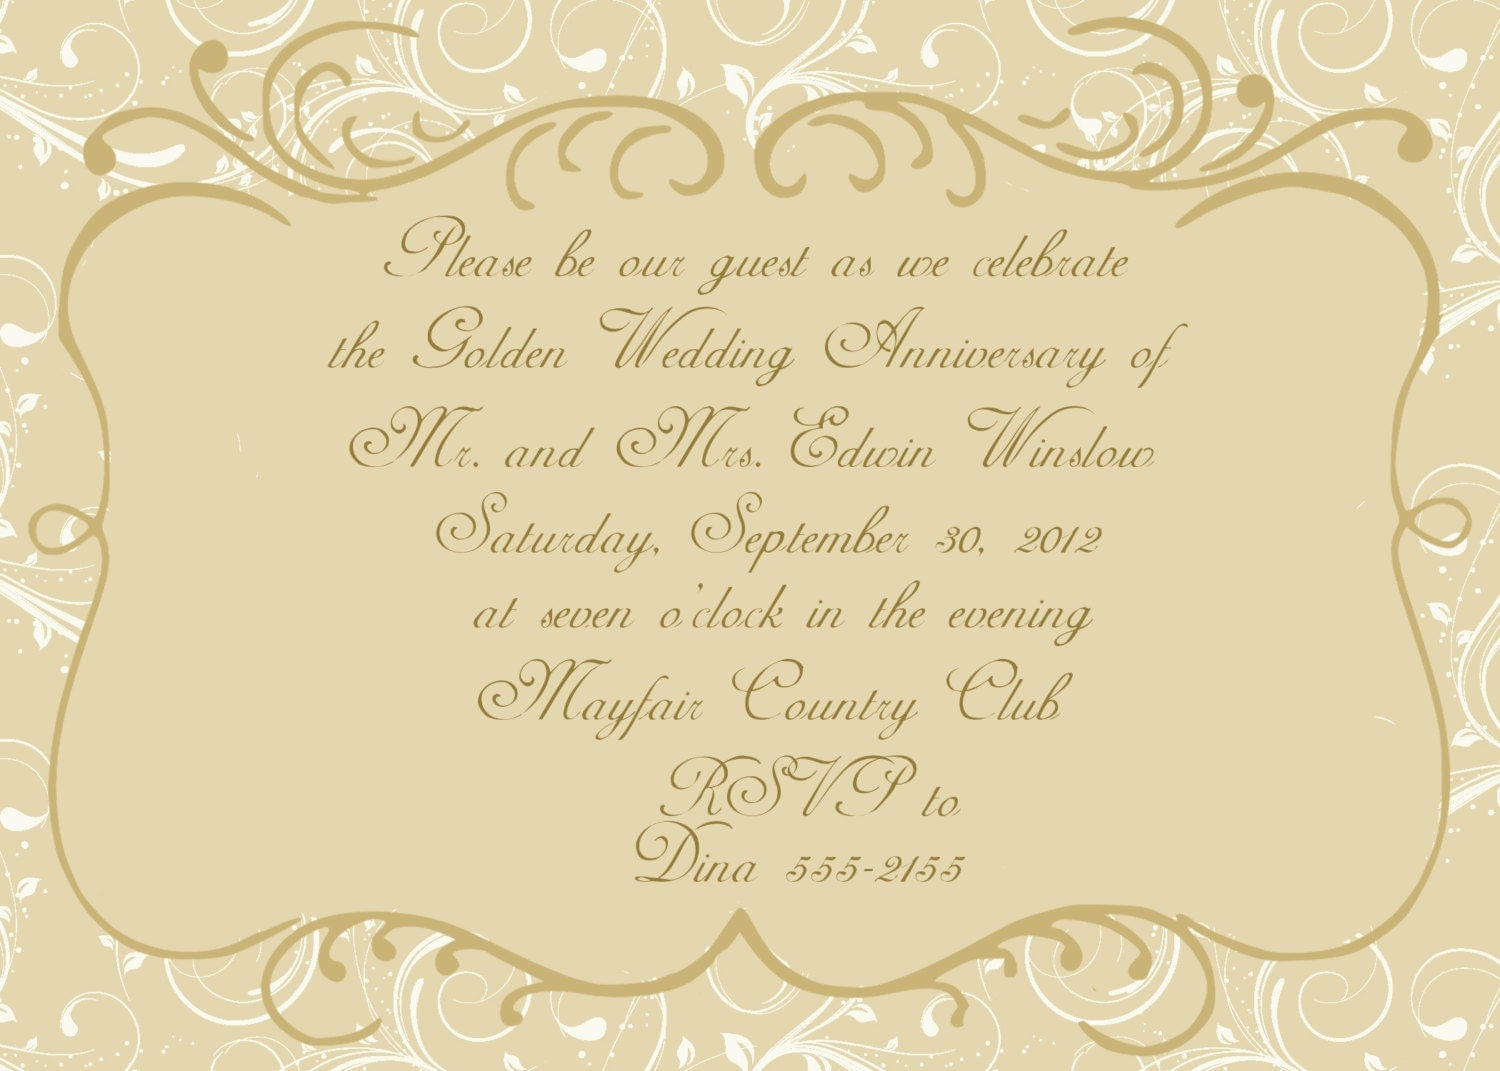 50th wedding anniversary invitation by celebrationspaperie on etsy - Wedding anniversary invitations ...